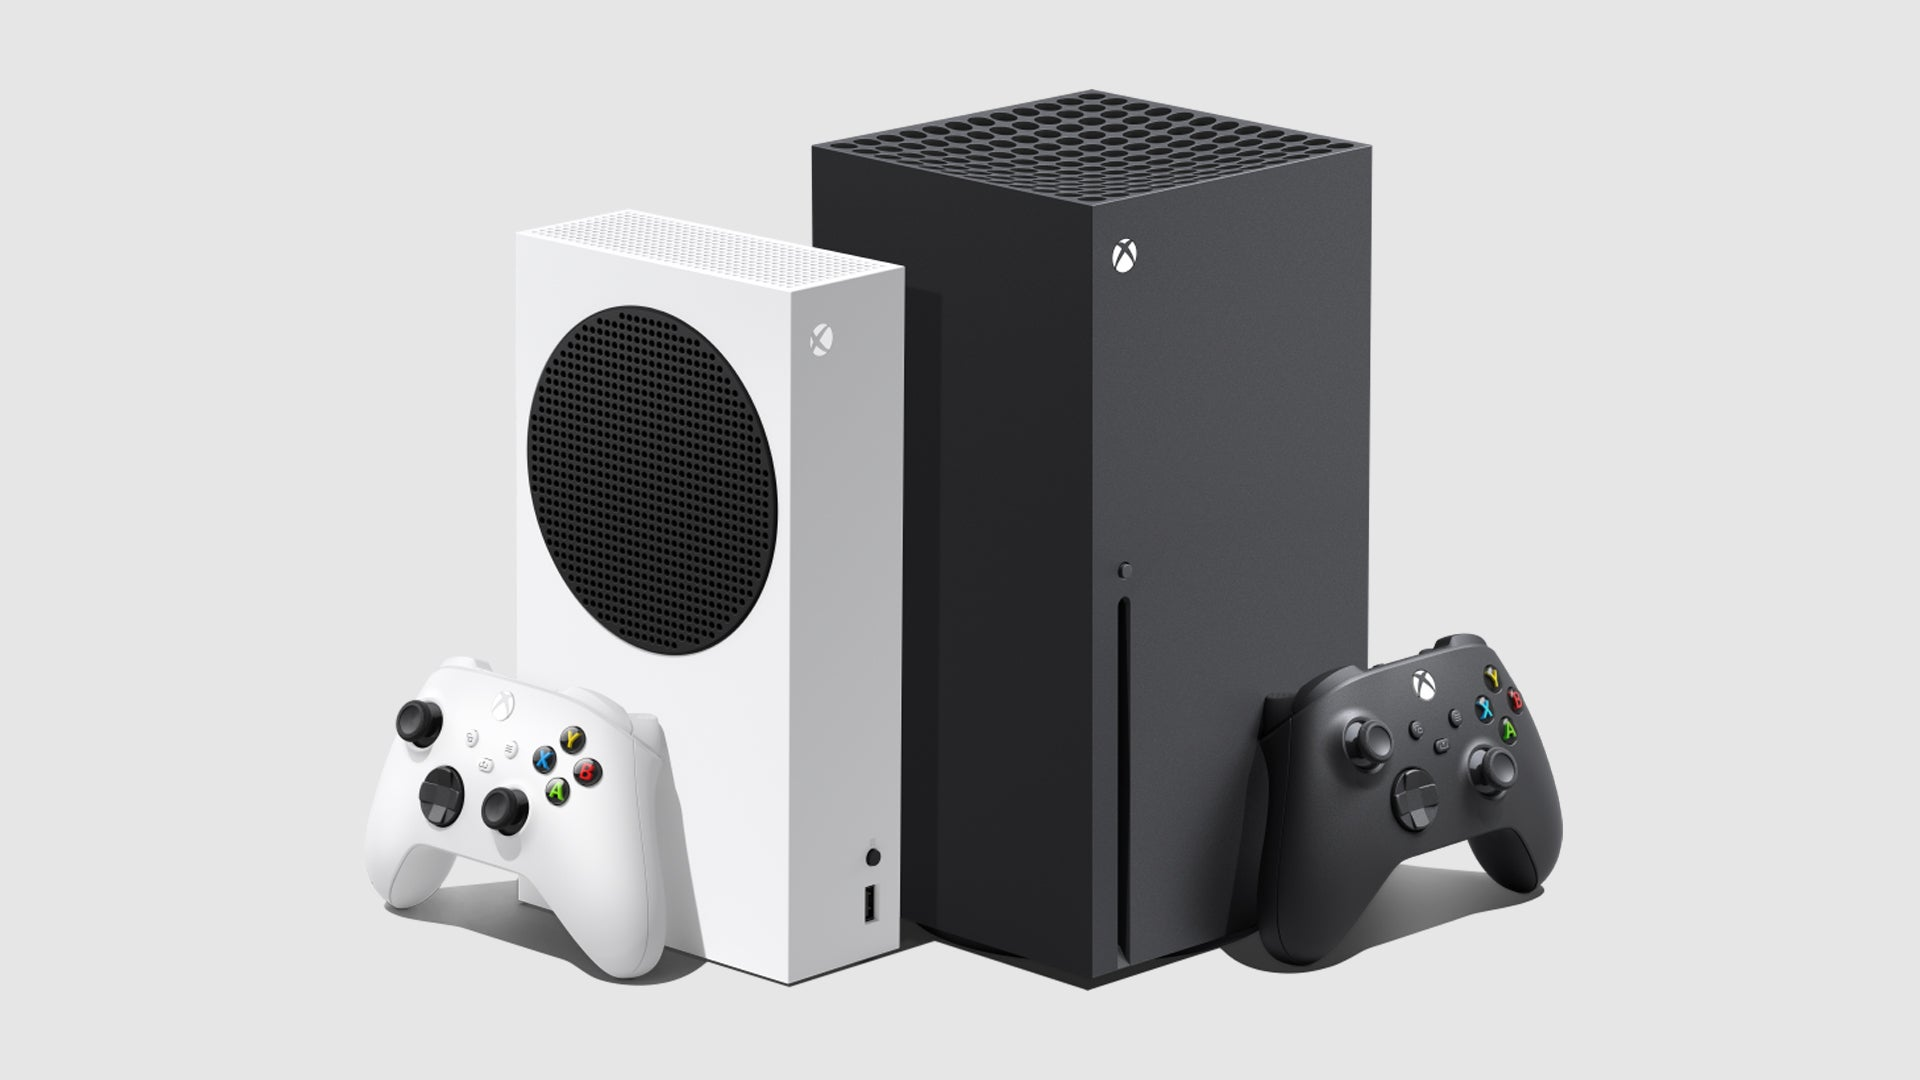 We've reviewed the Xbox Series X and S: Here's what you need to know